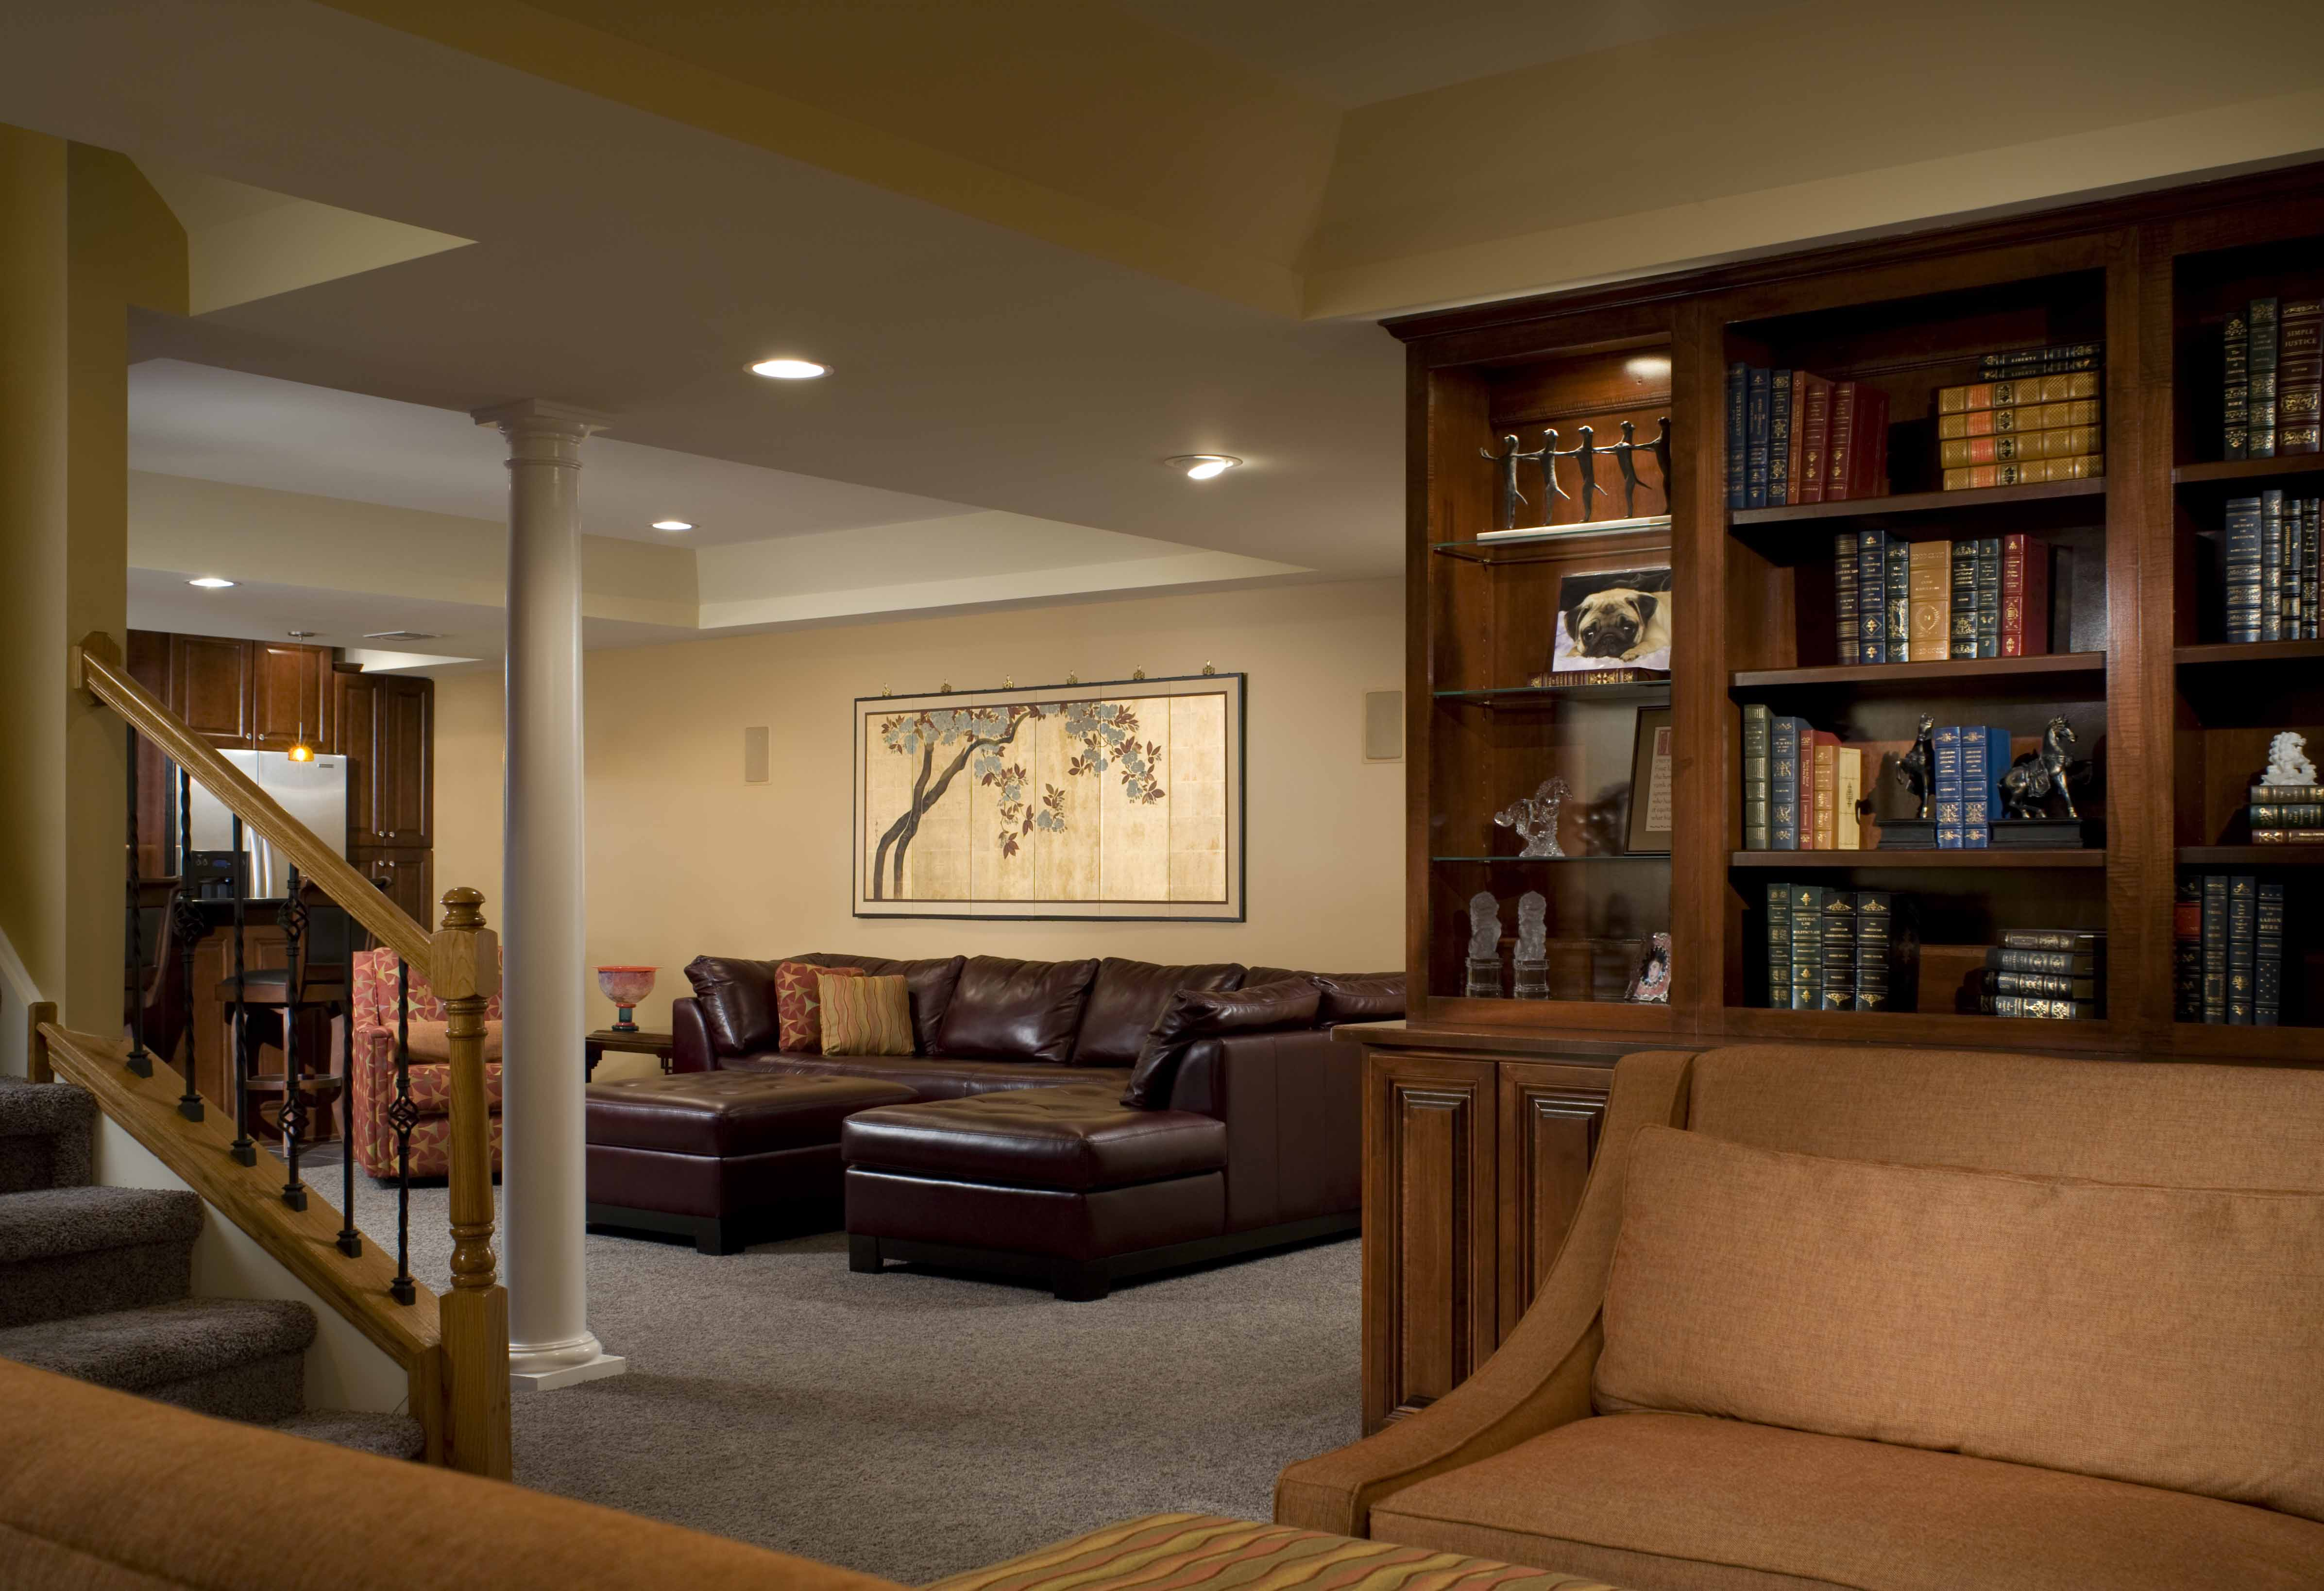 Remodeling Basement Ideas Entrancing 30 Basement Remodeling Ideas & Inspiration Review